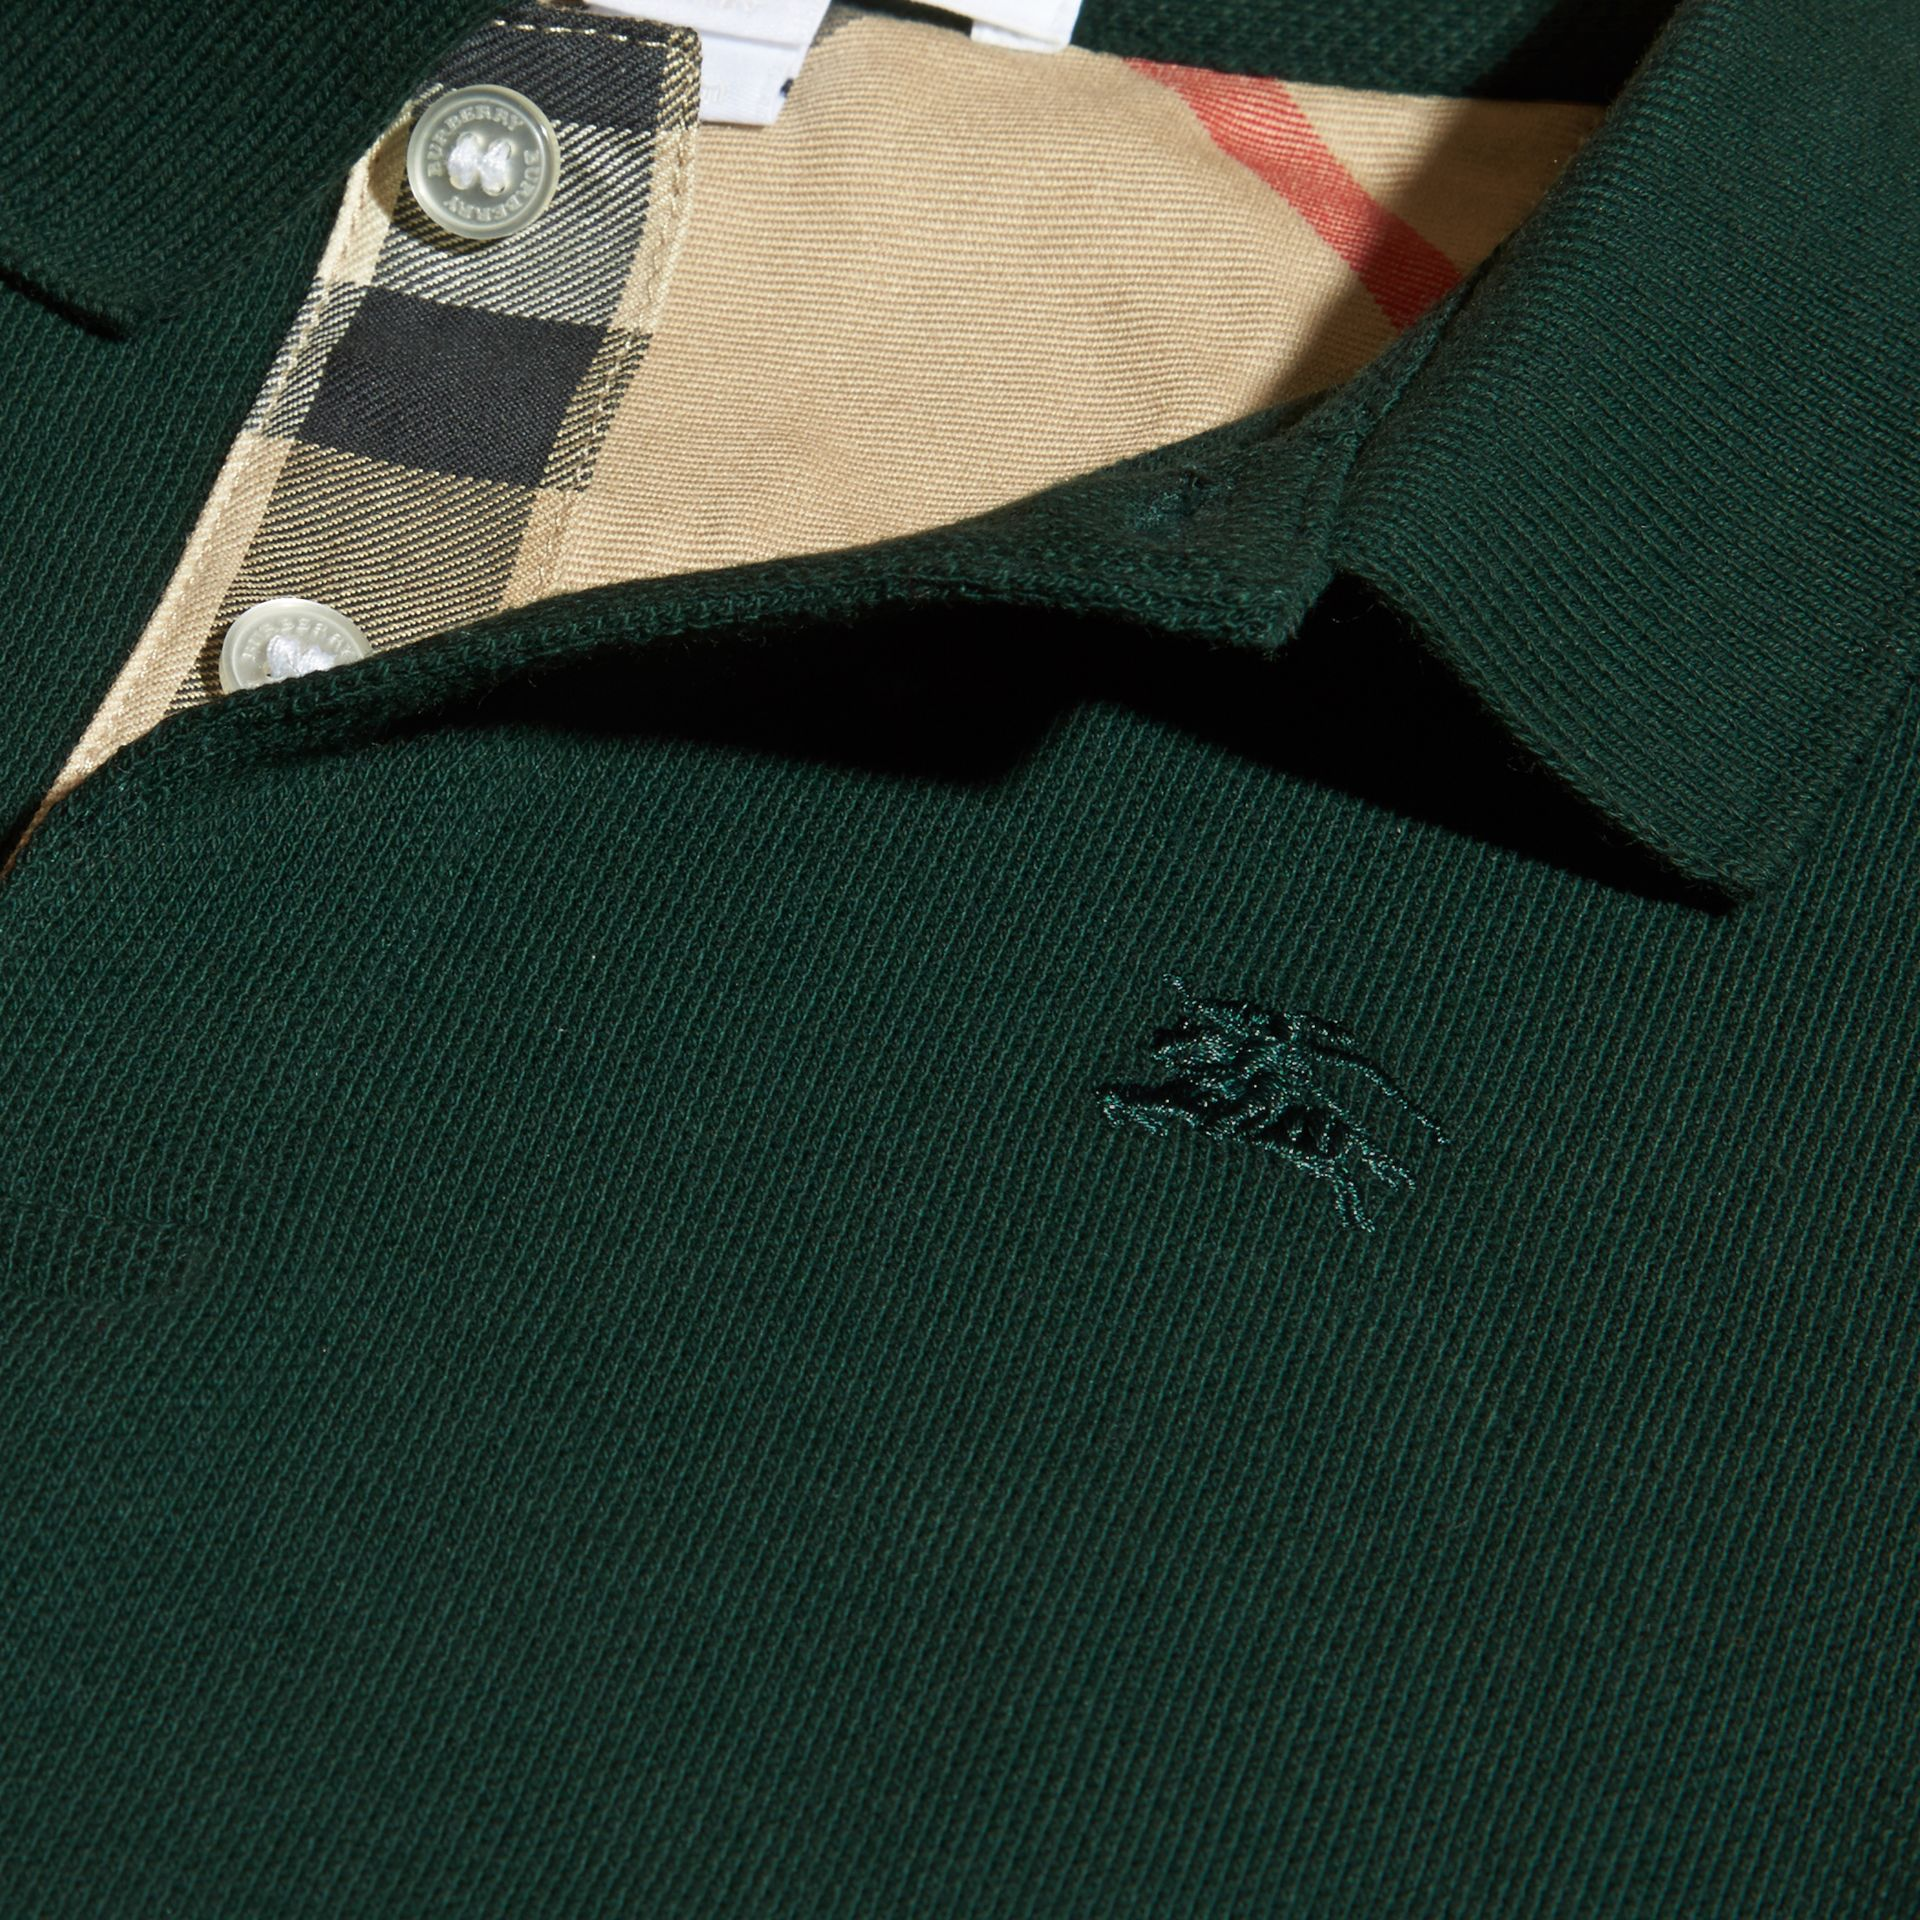 Racing green Check Placket Polo Shirt Racing Green - gallery image 2